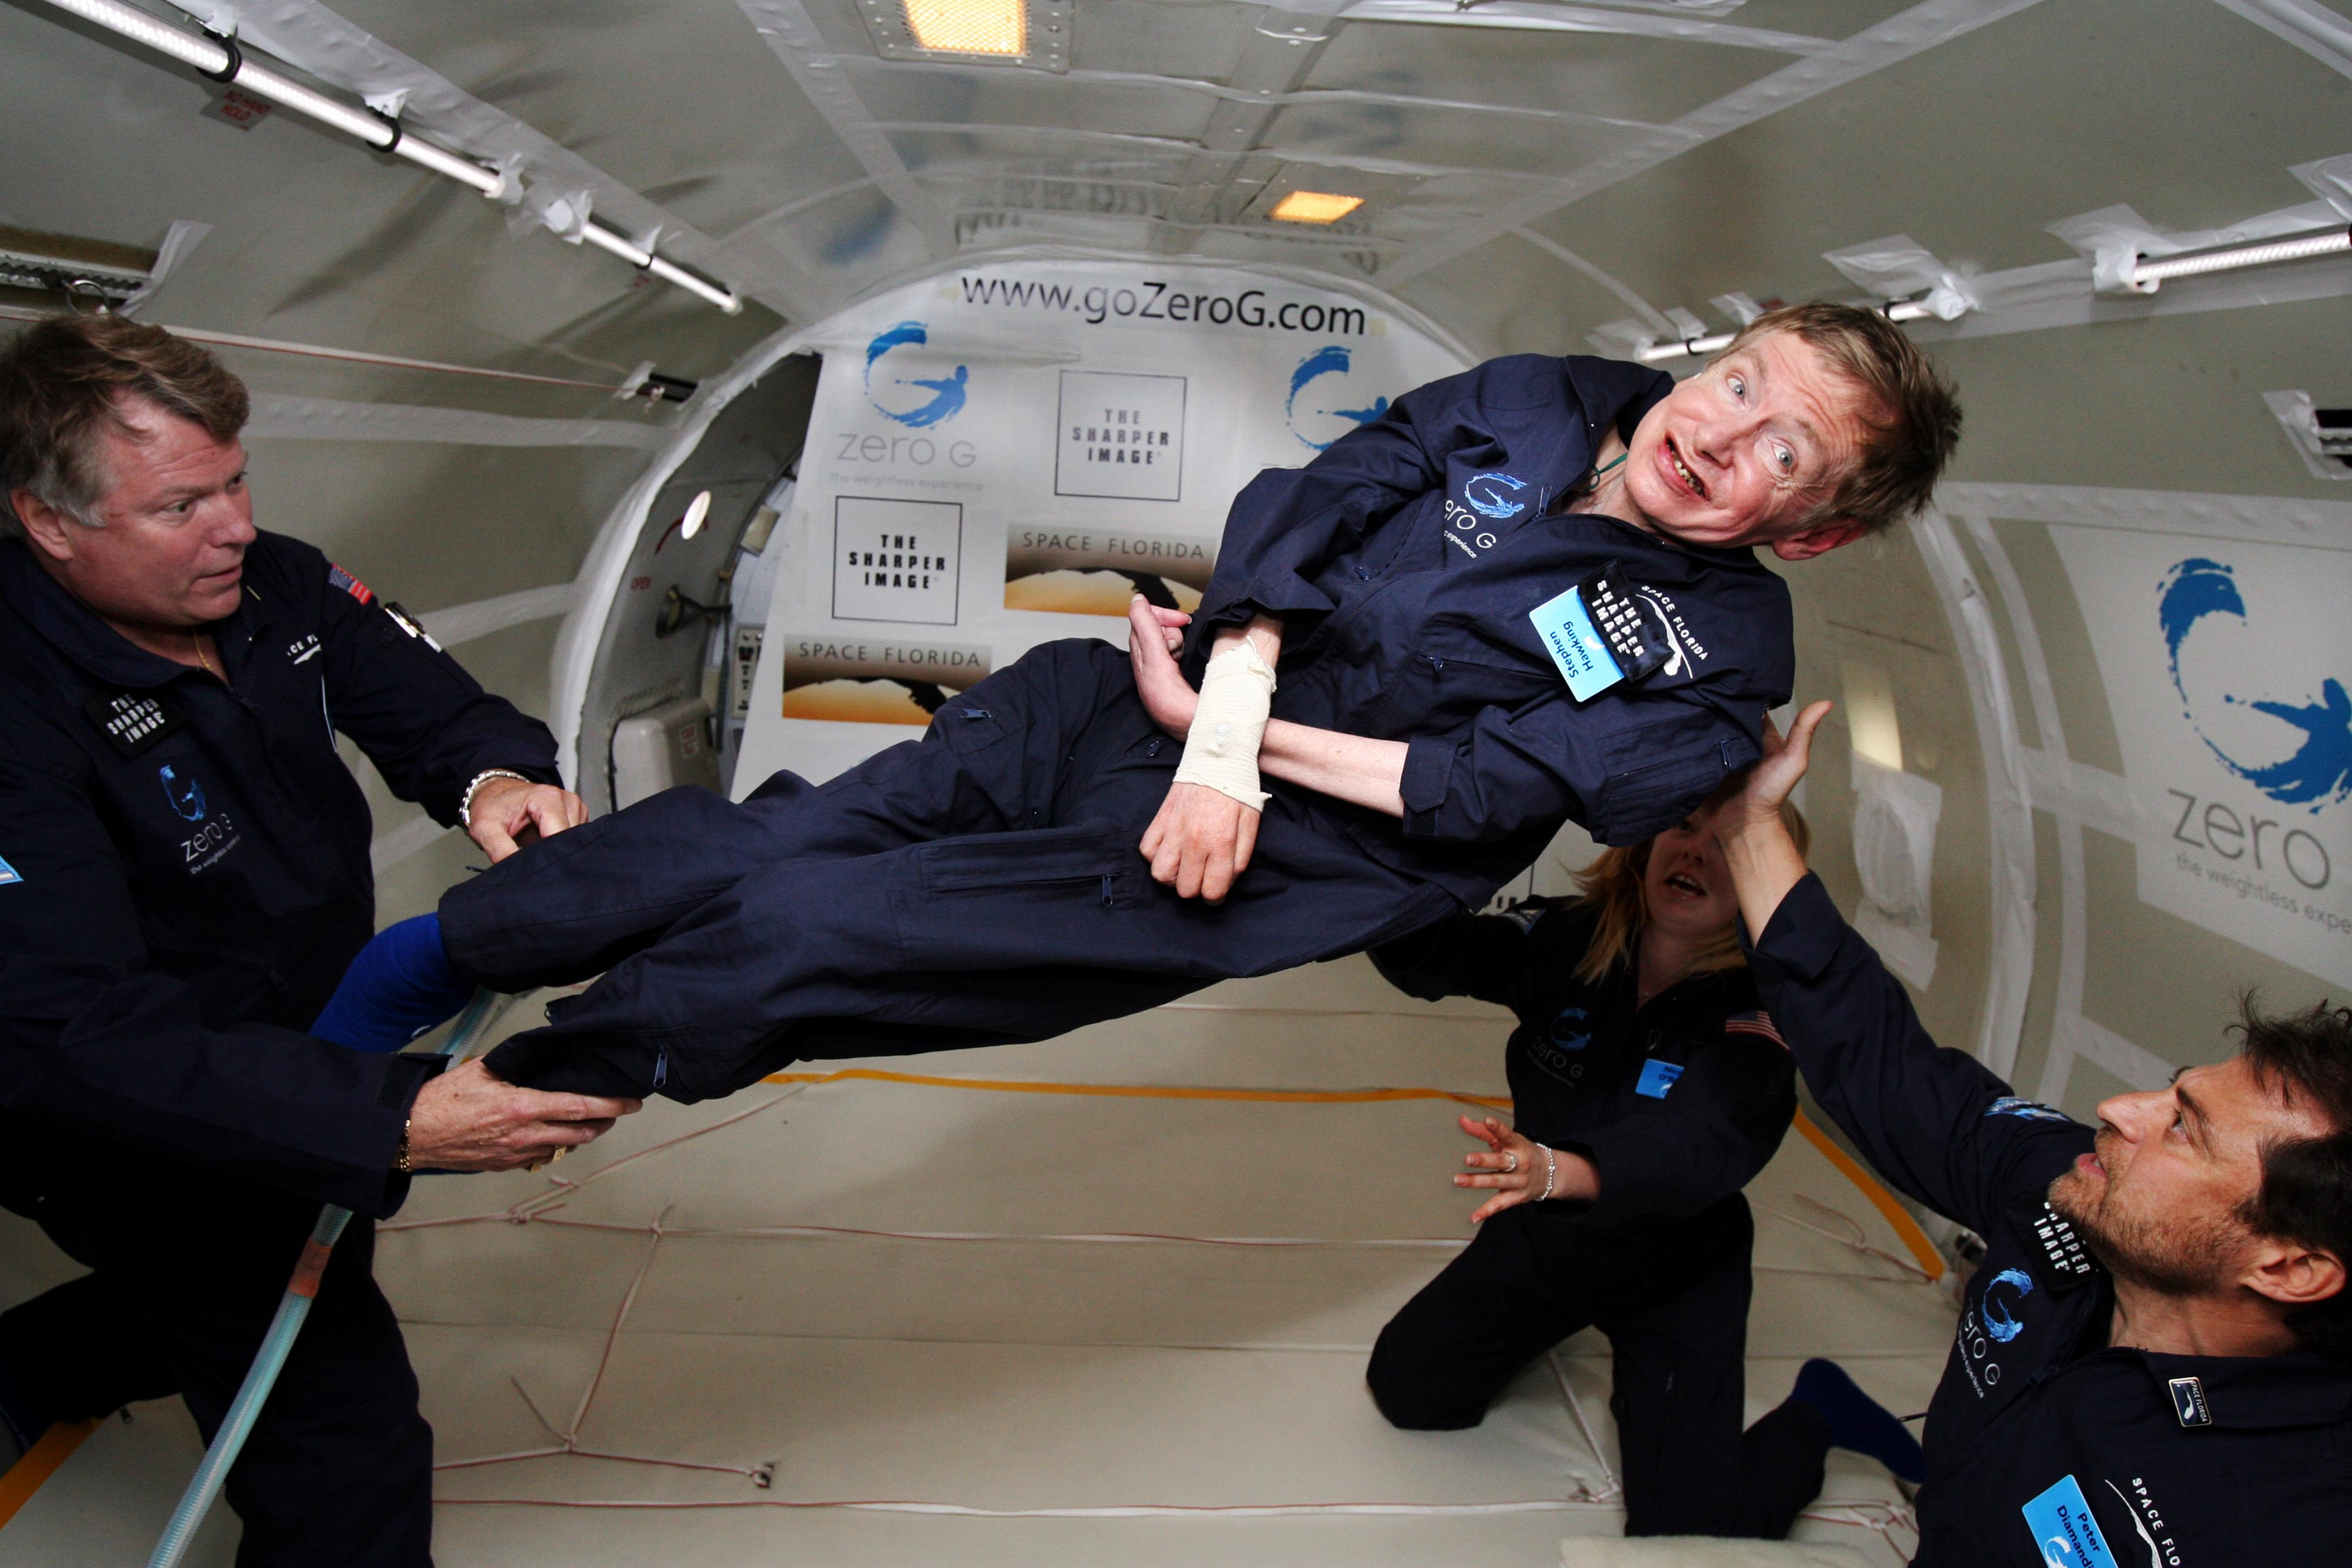 Stephen Hawking on a weightless suborbital flight, made possible because of his theories on gravity.